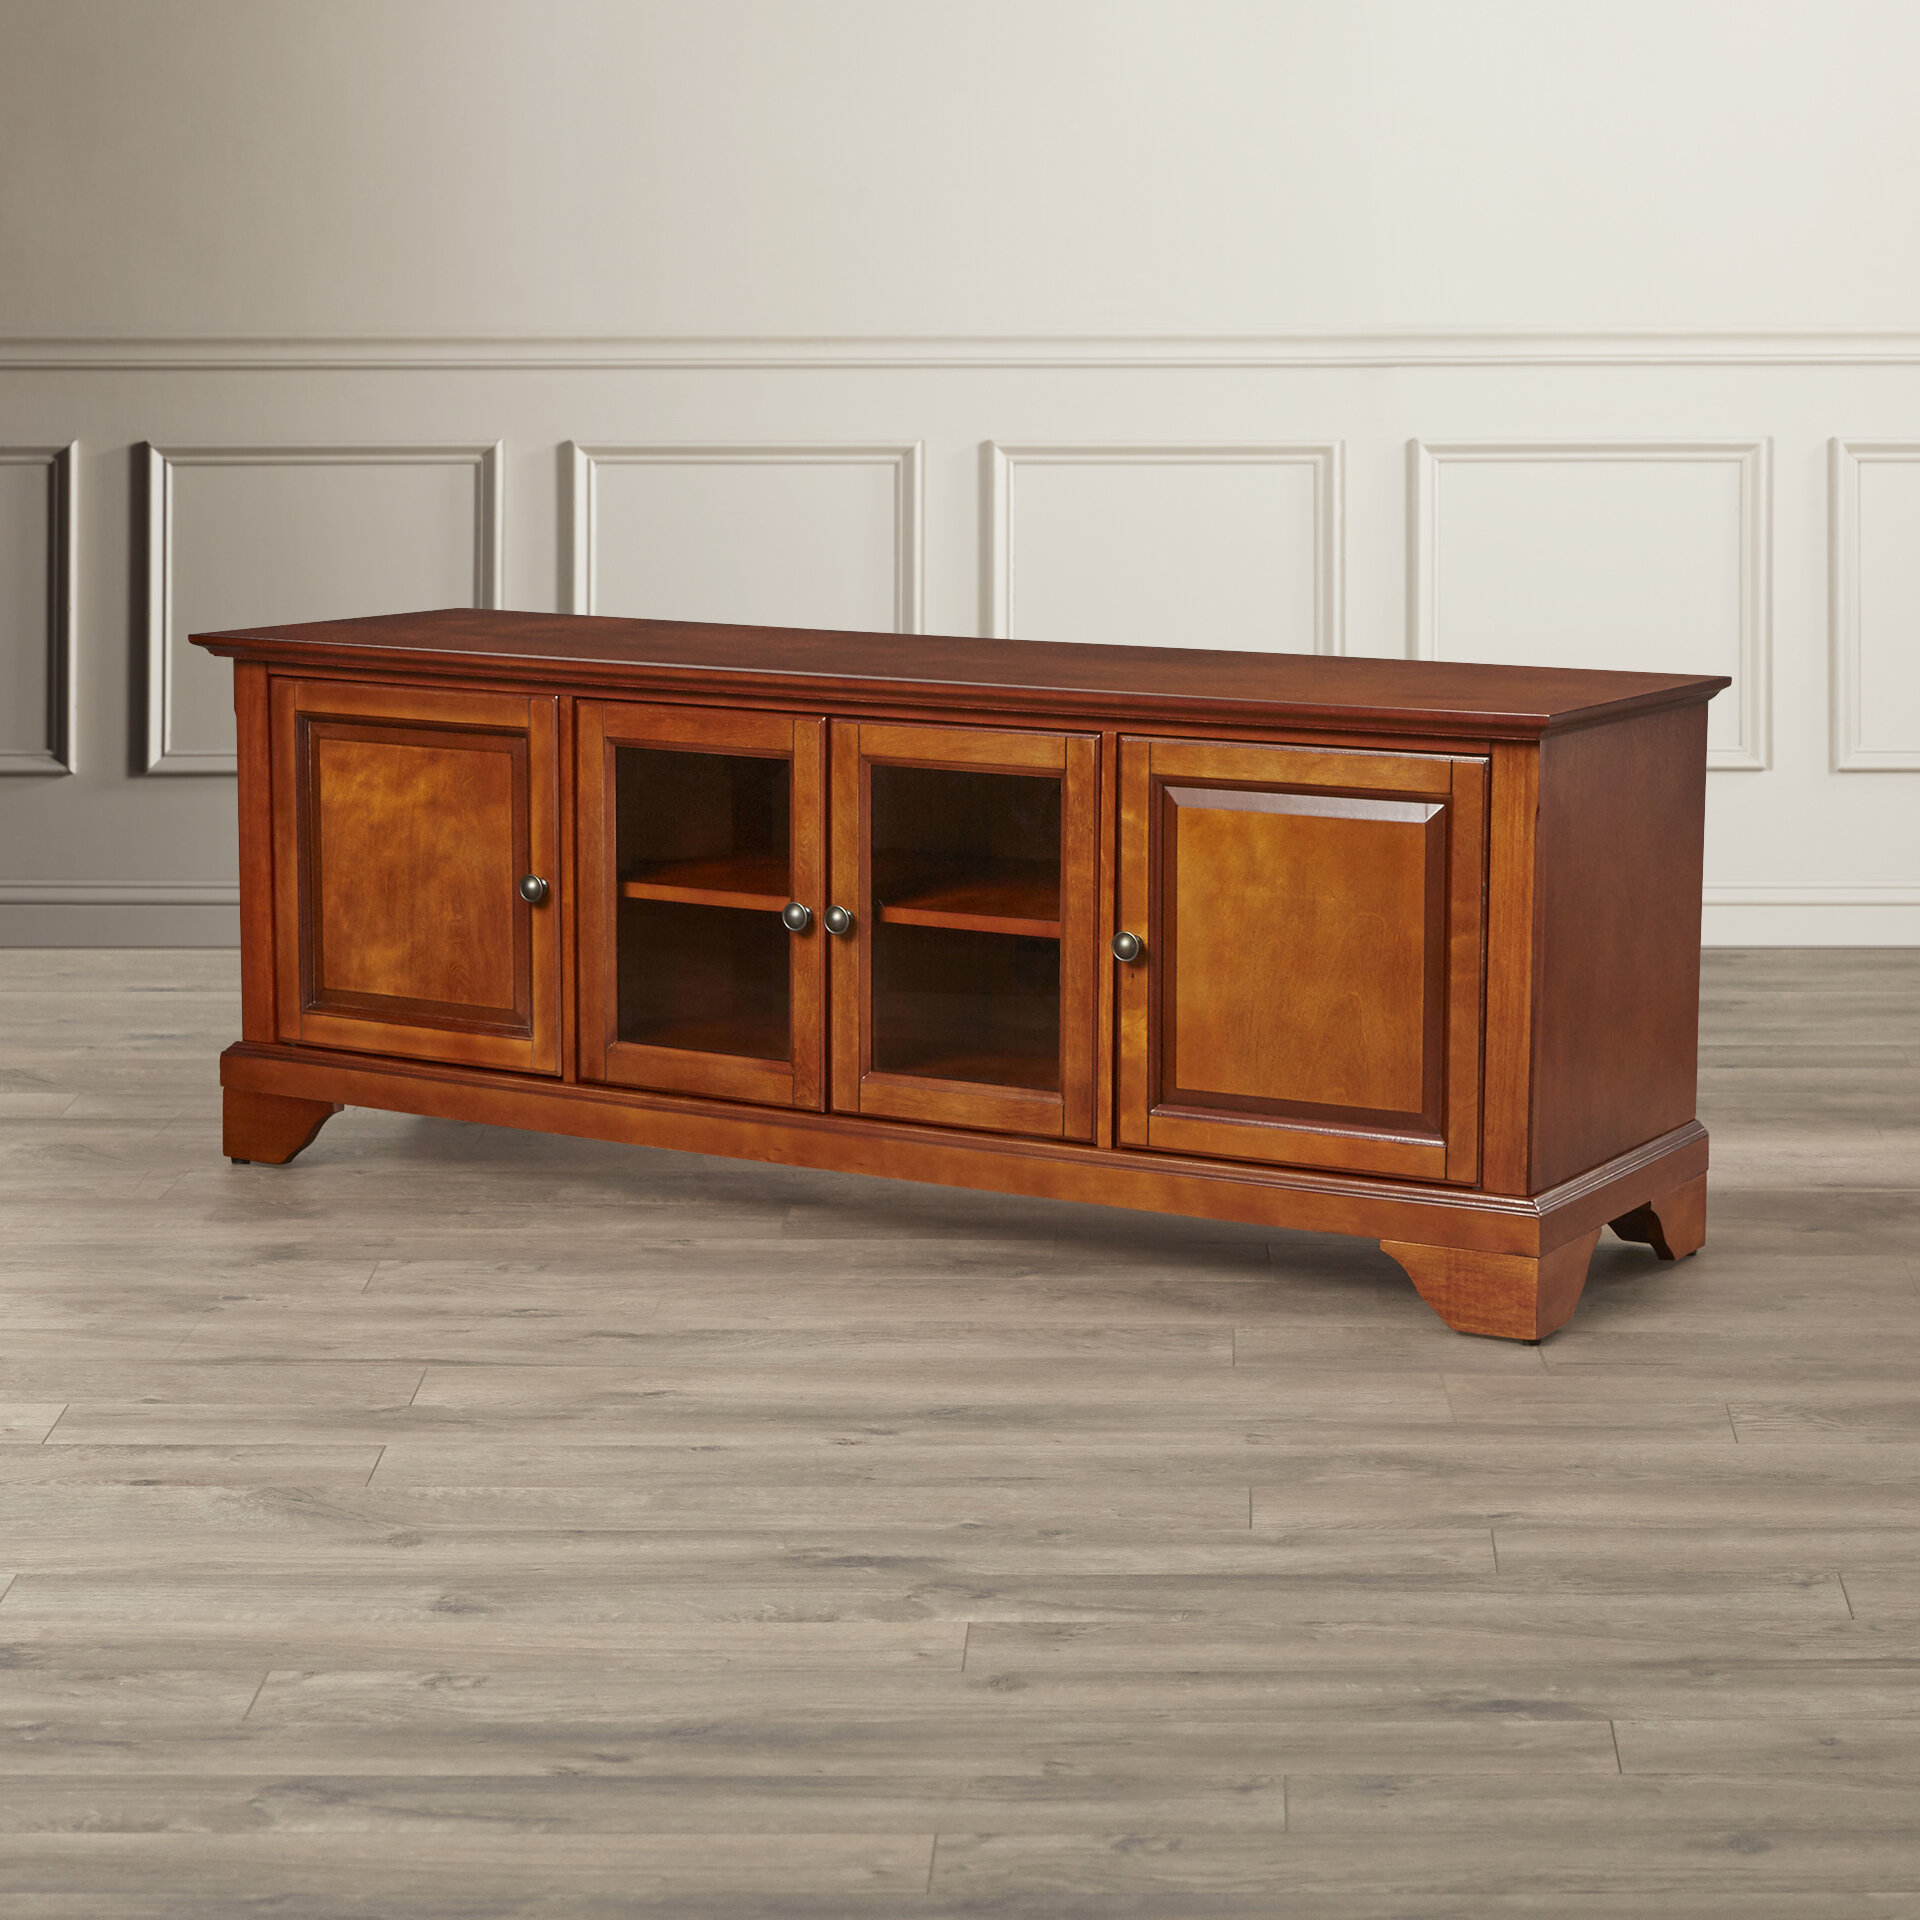 Darby Home Co Abbate Low Profile Tv Stand For Tvs Up To 60